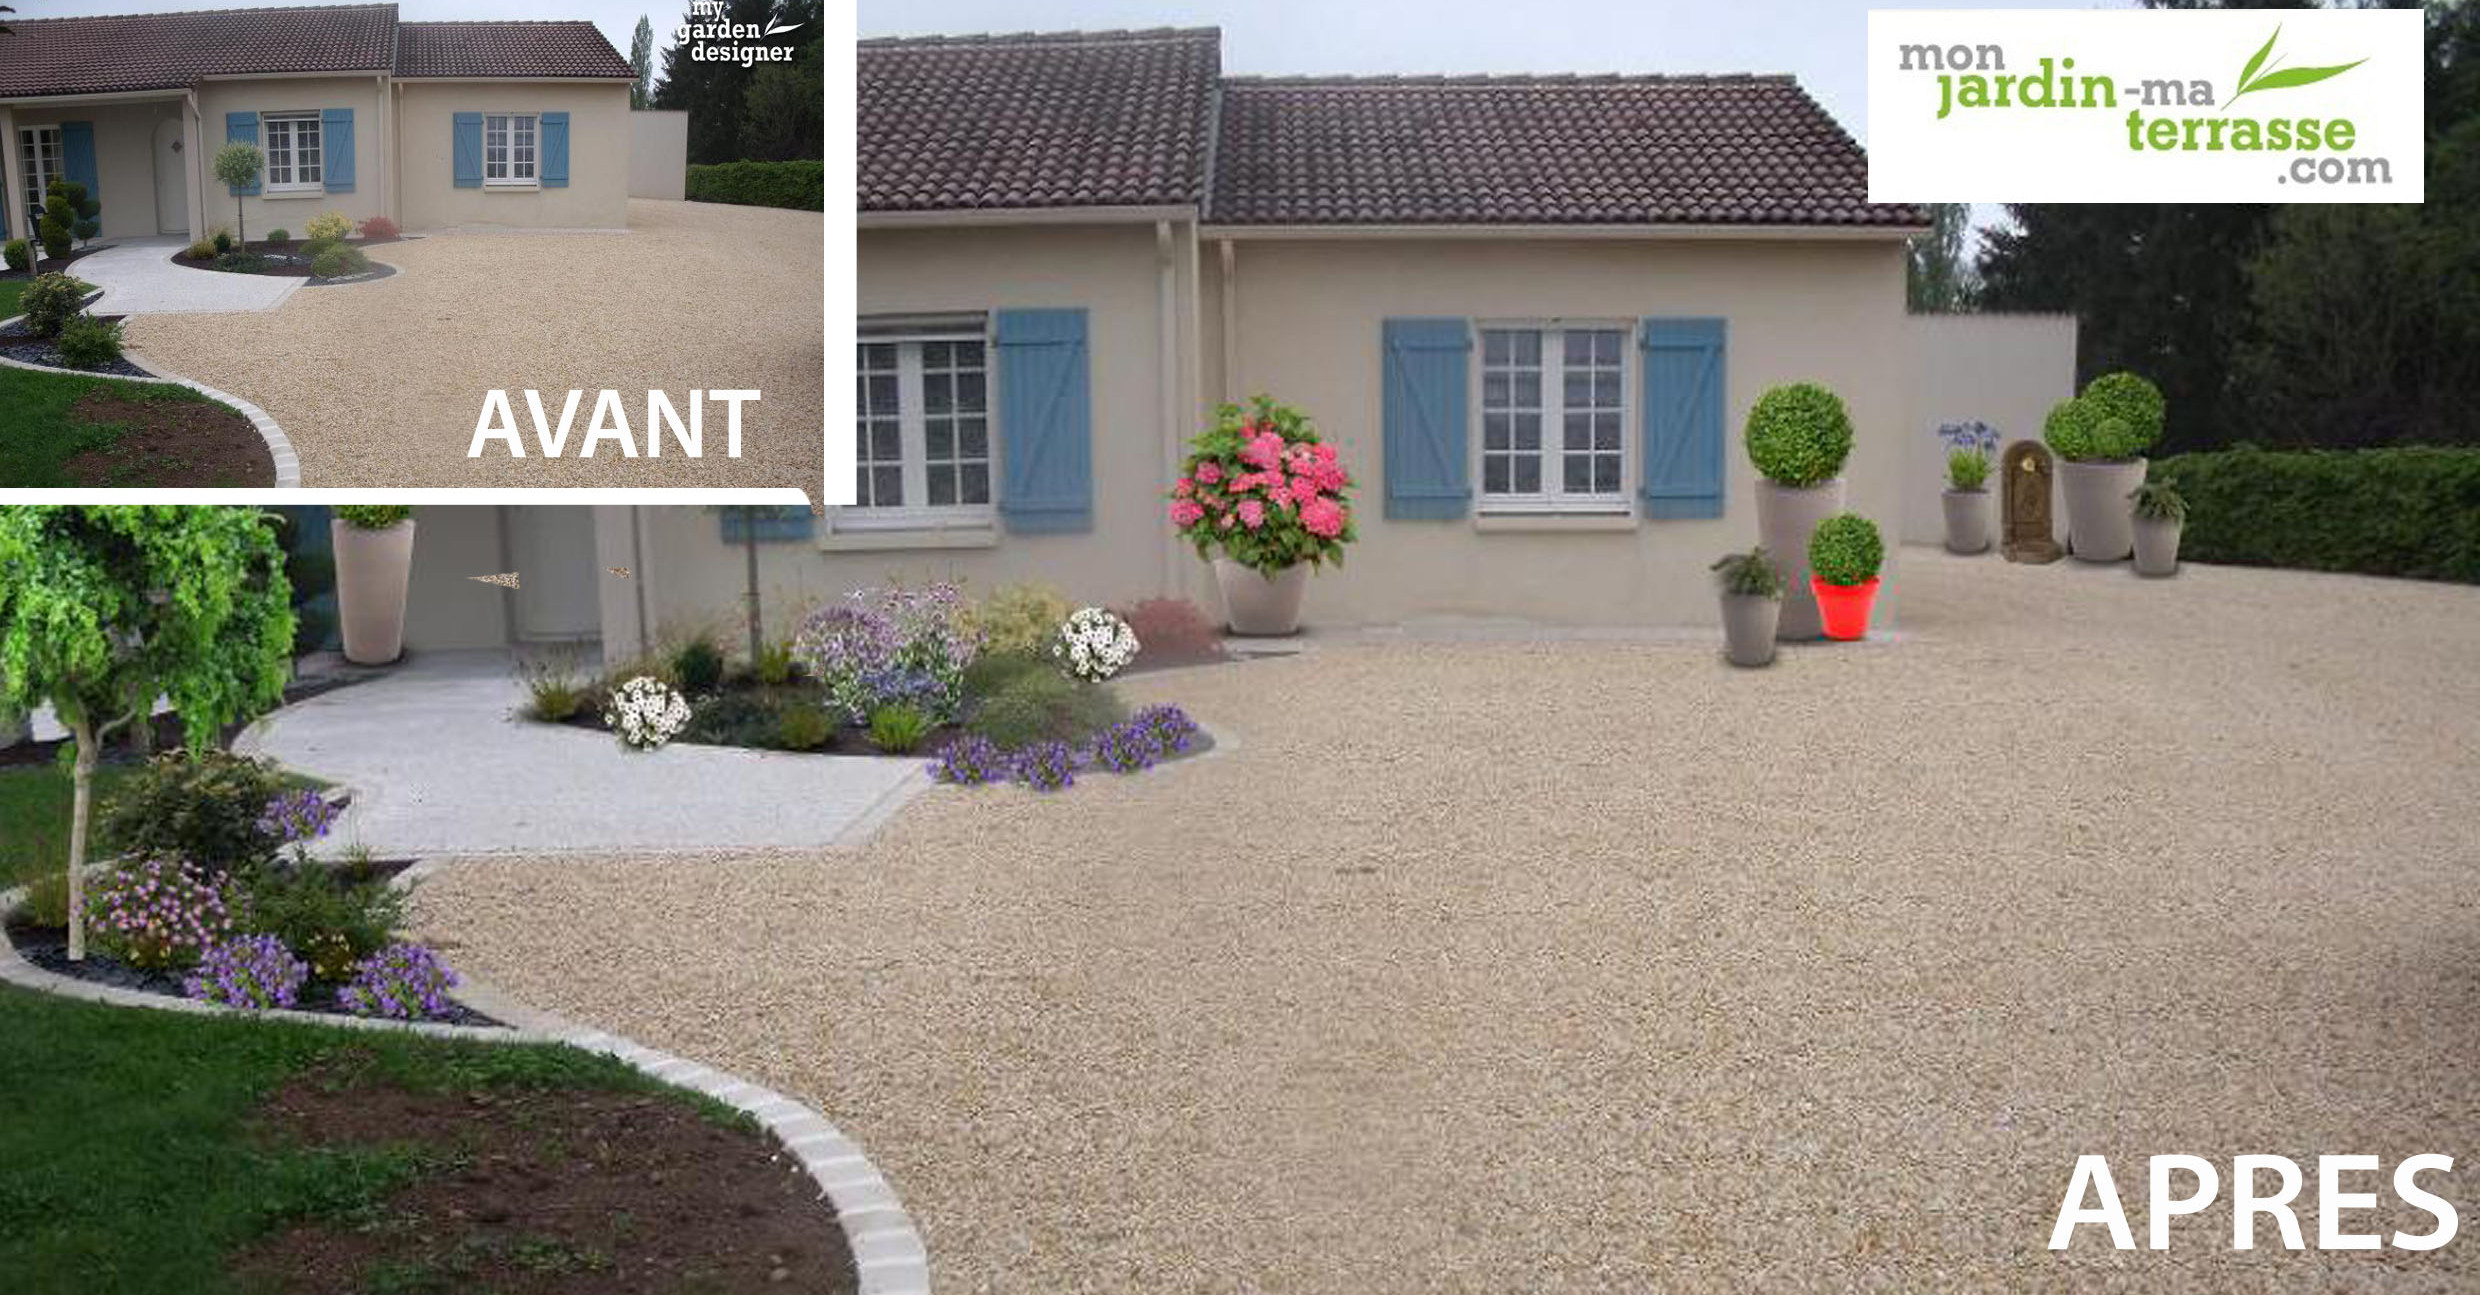 Id e d am nagement d une entr e de maison monjardin for Amenagement jardin maison